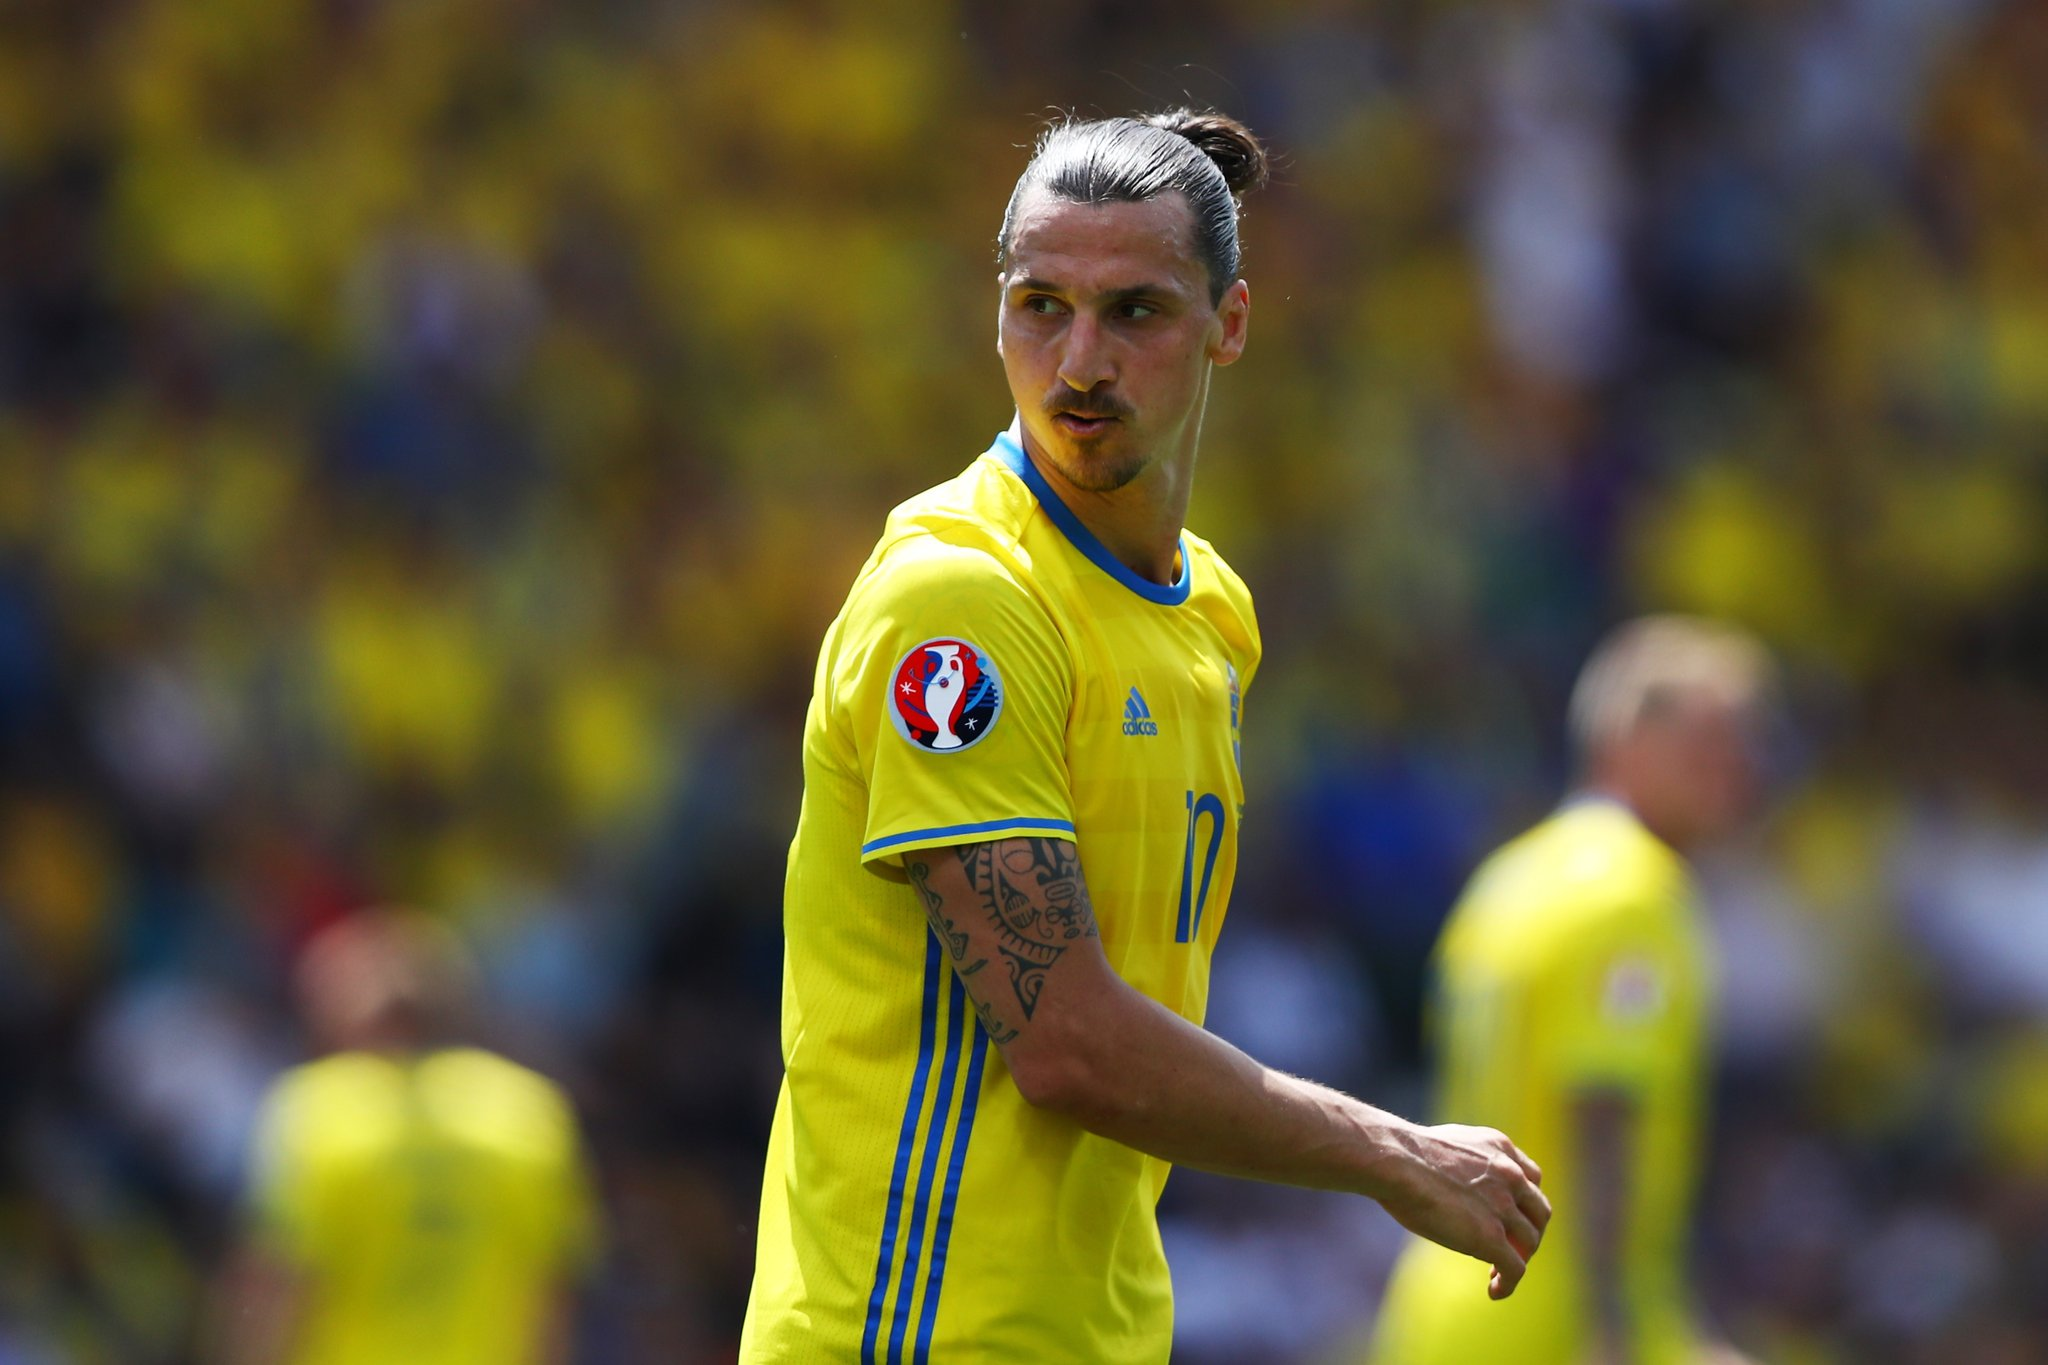 Ibrahimovic To Retire After Euro 2016, Out Of Olympics